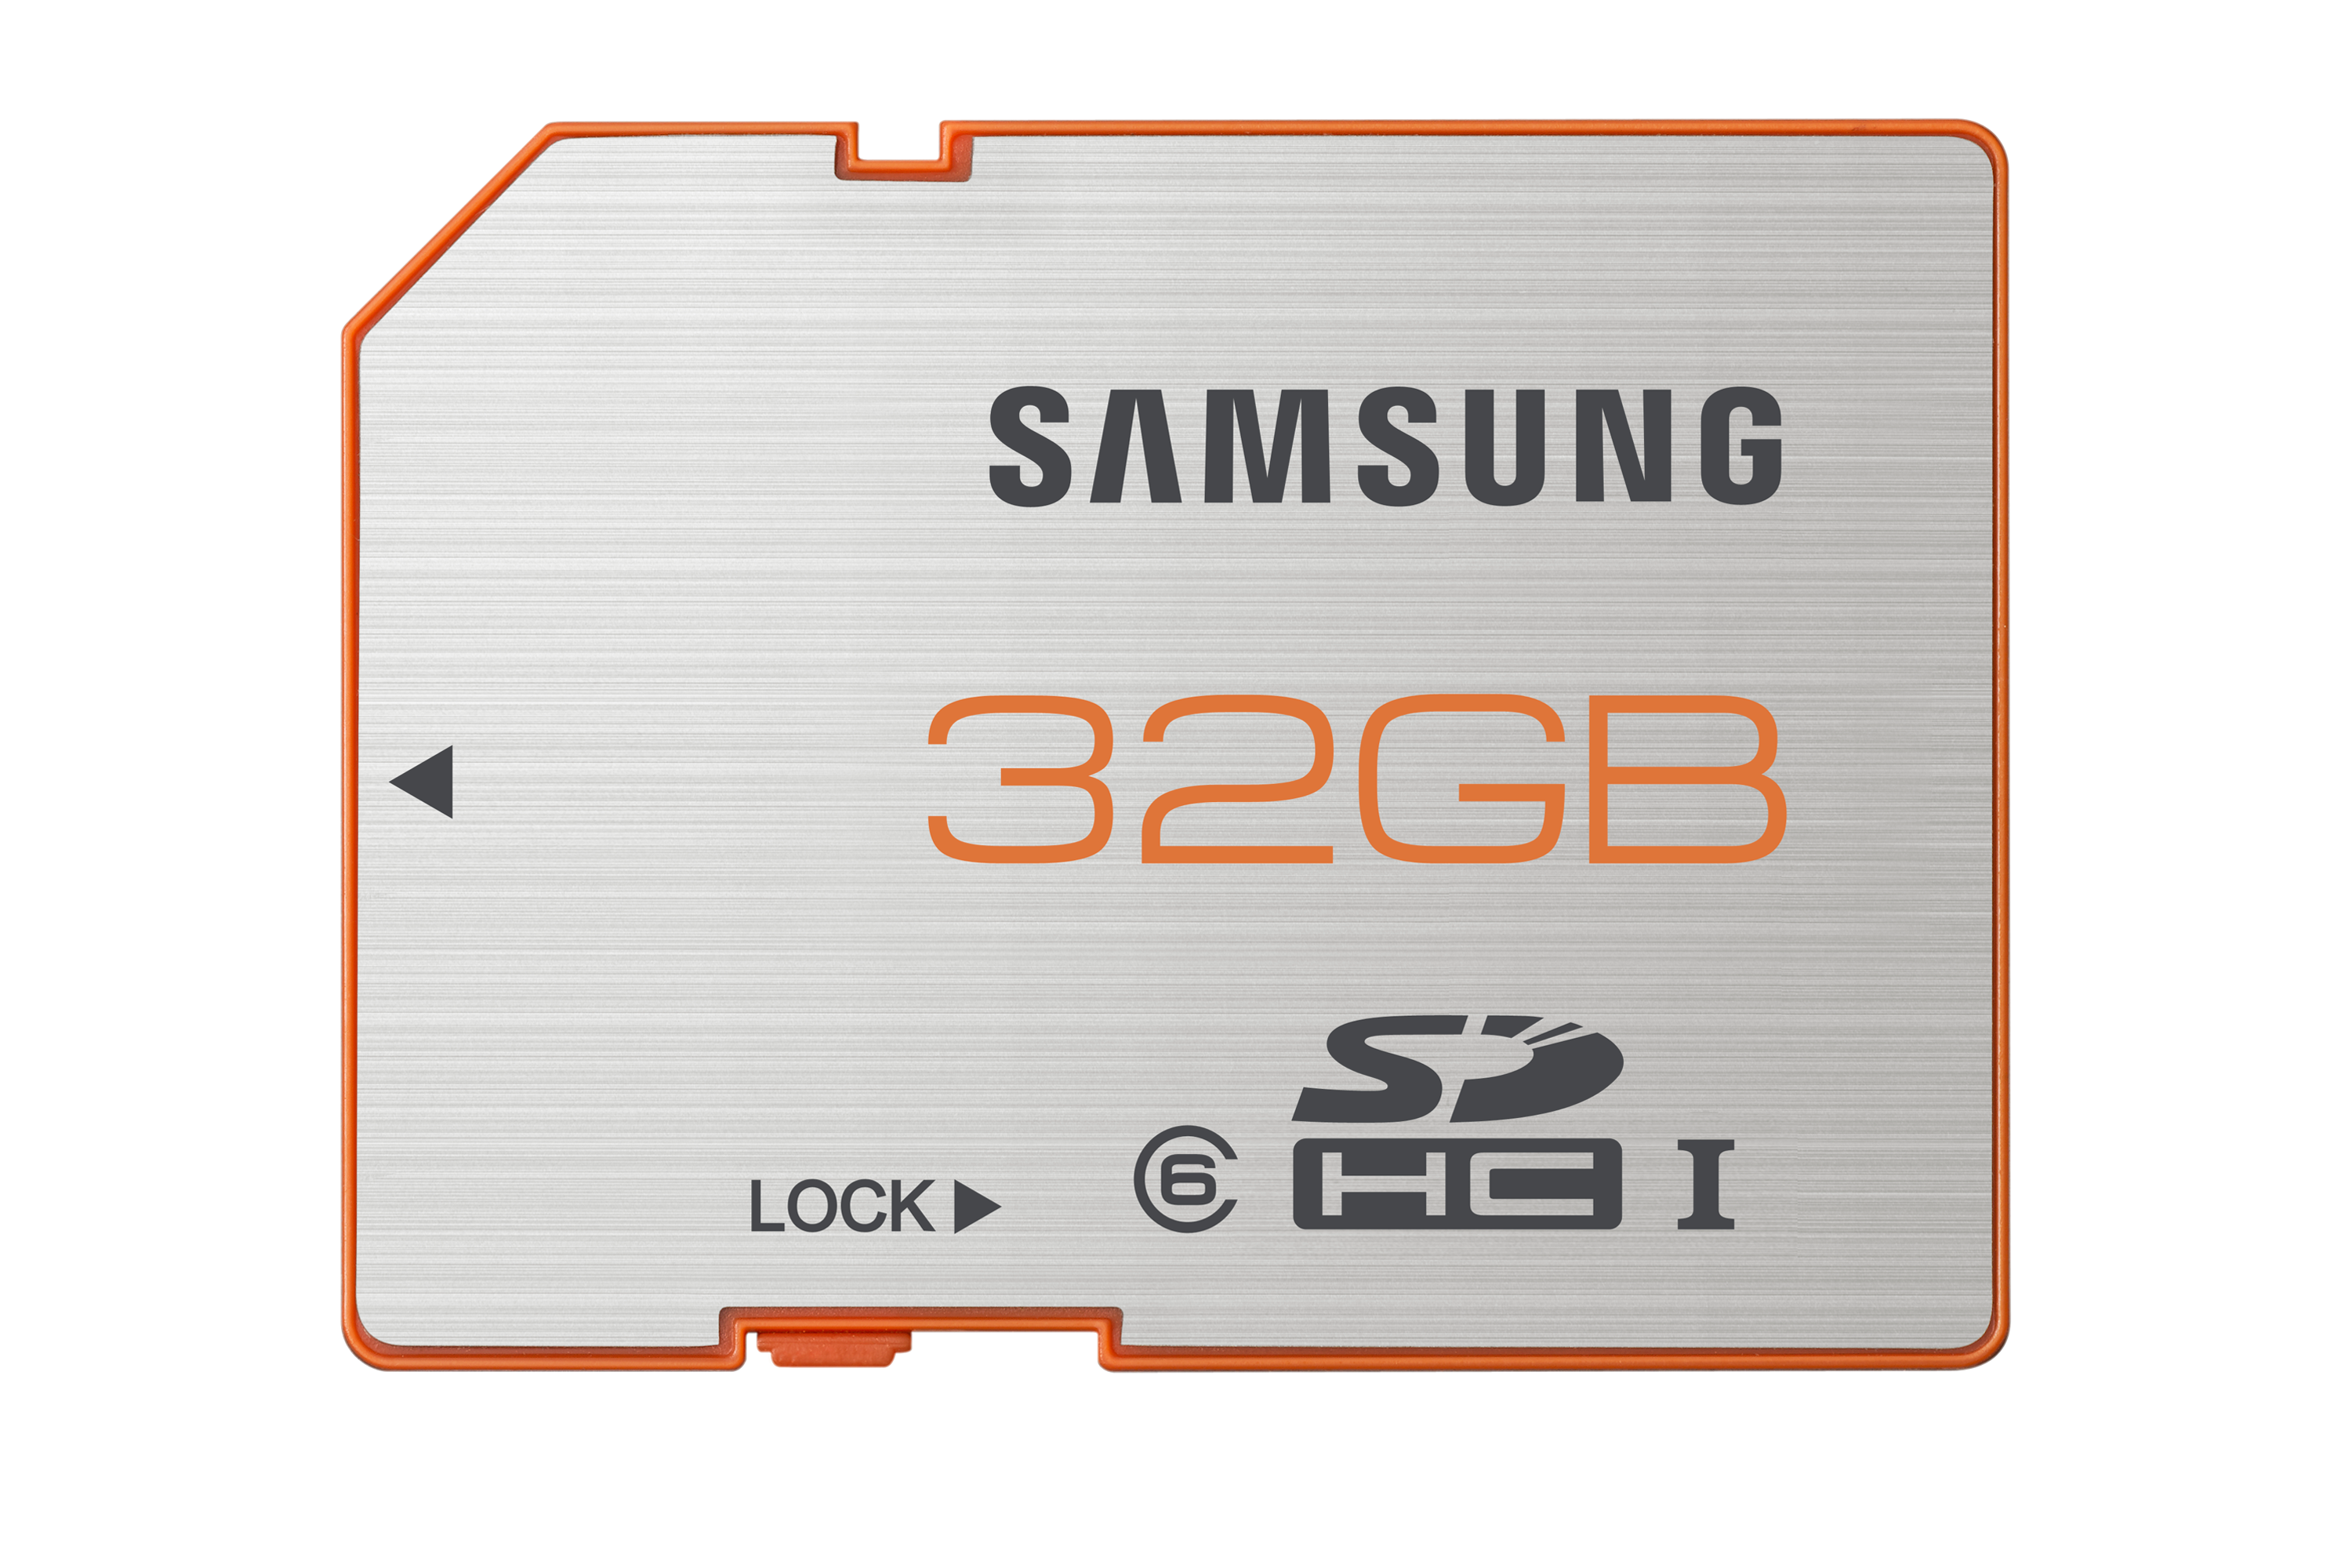 32GB SDHC Plus Class 6 Memory Card